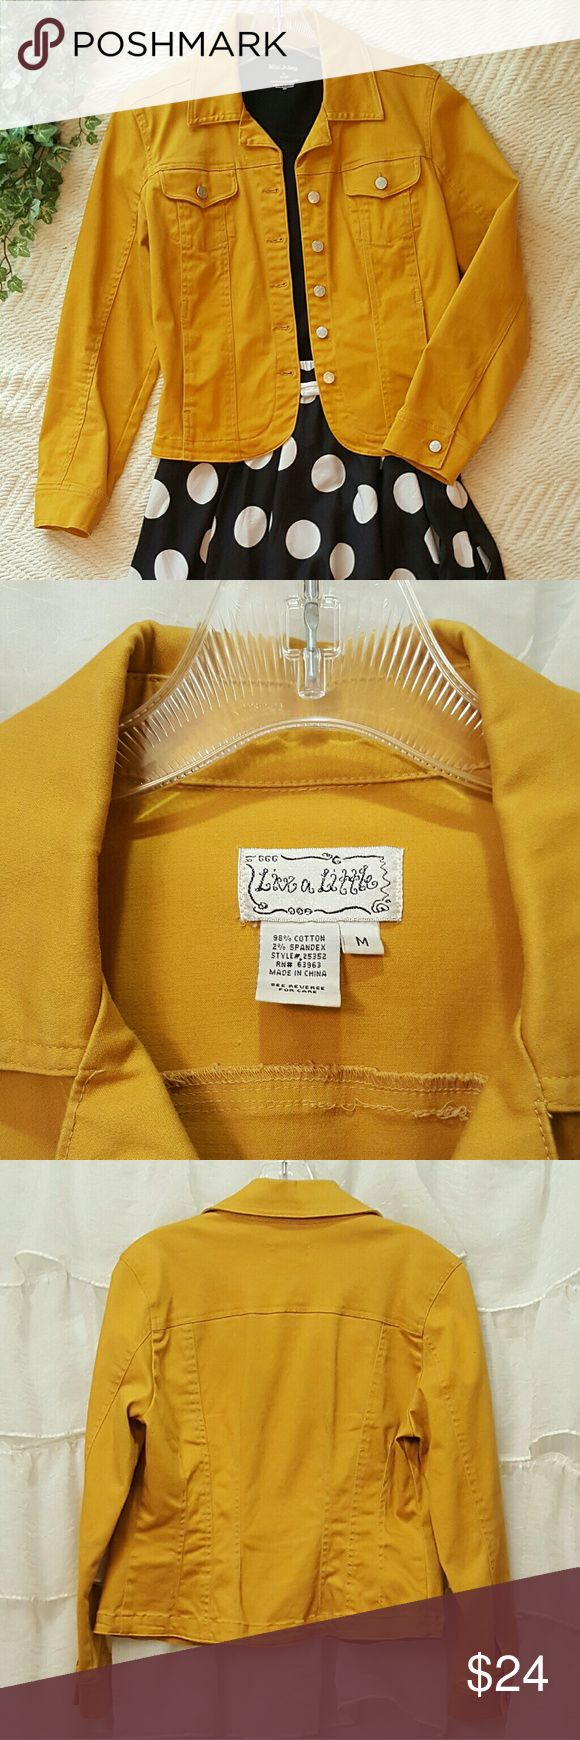 Live a Little Mustard Jean Jacket Live a Little Mustard Jean Jacket. Add a pop of color this fall with this adorable denim jacket! Excellent condition! Live a Little Jackets & Coats Jean Jackets